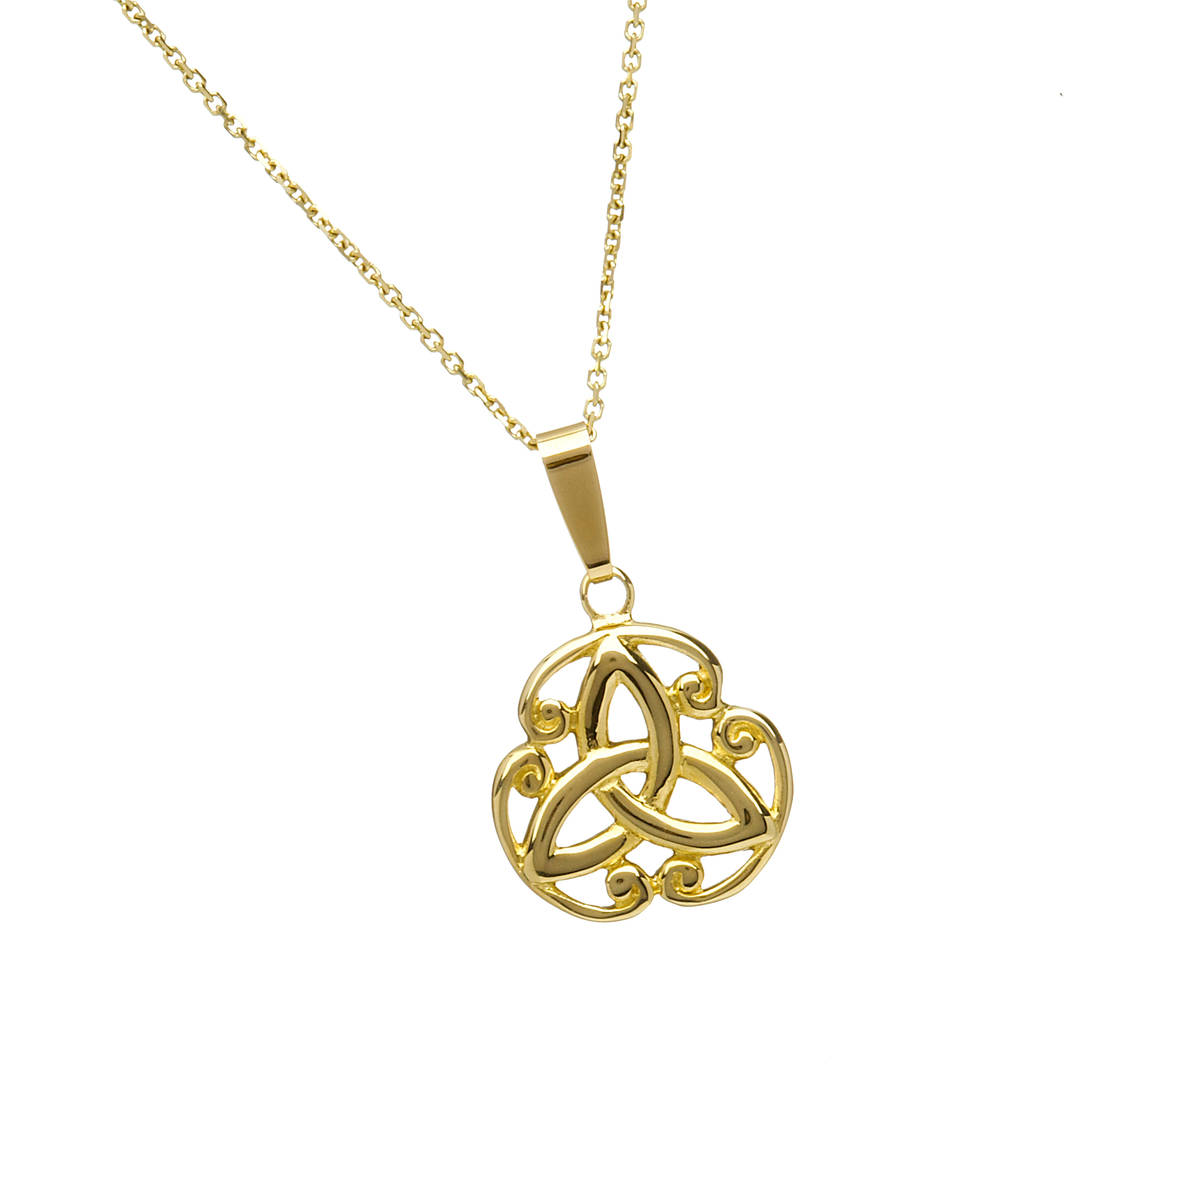 10 carat yellow gold filigree pendant trinity knot in scrolls which can be ordered in white gold or red or rose goldAll you have to do is leave your instructions in the comment box at checkout.